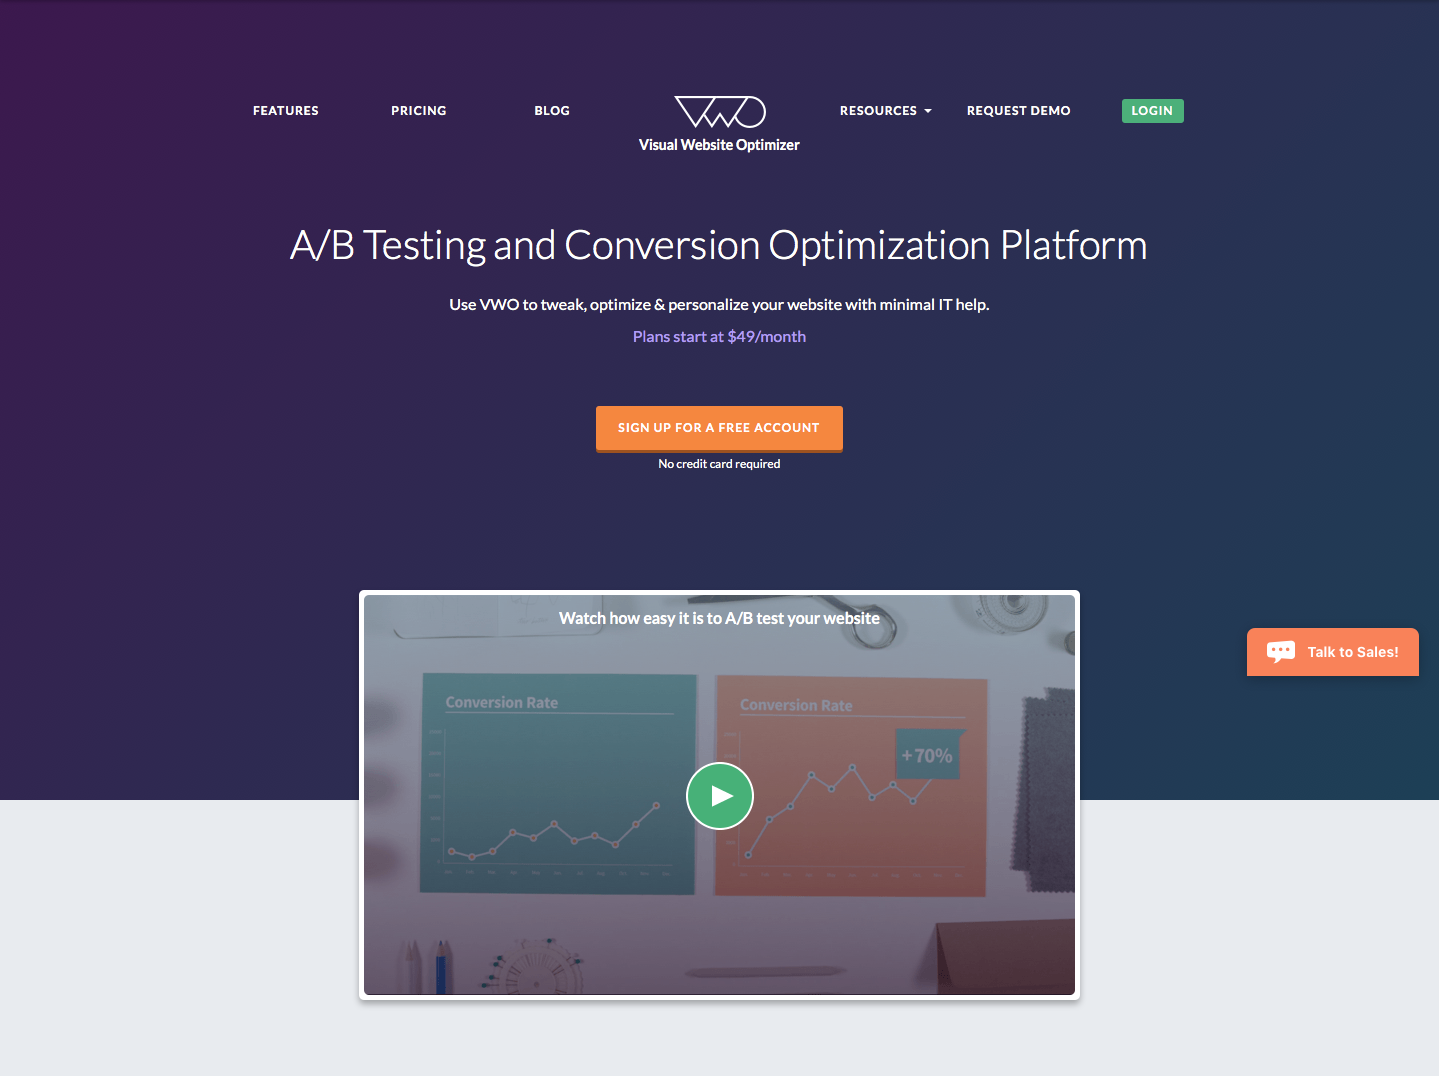 Landing Page Examples from Top Tech Companies | Visual Website Optimizer Application